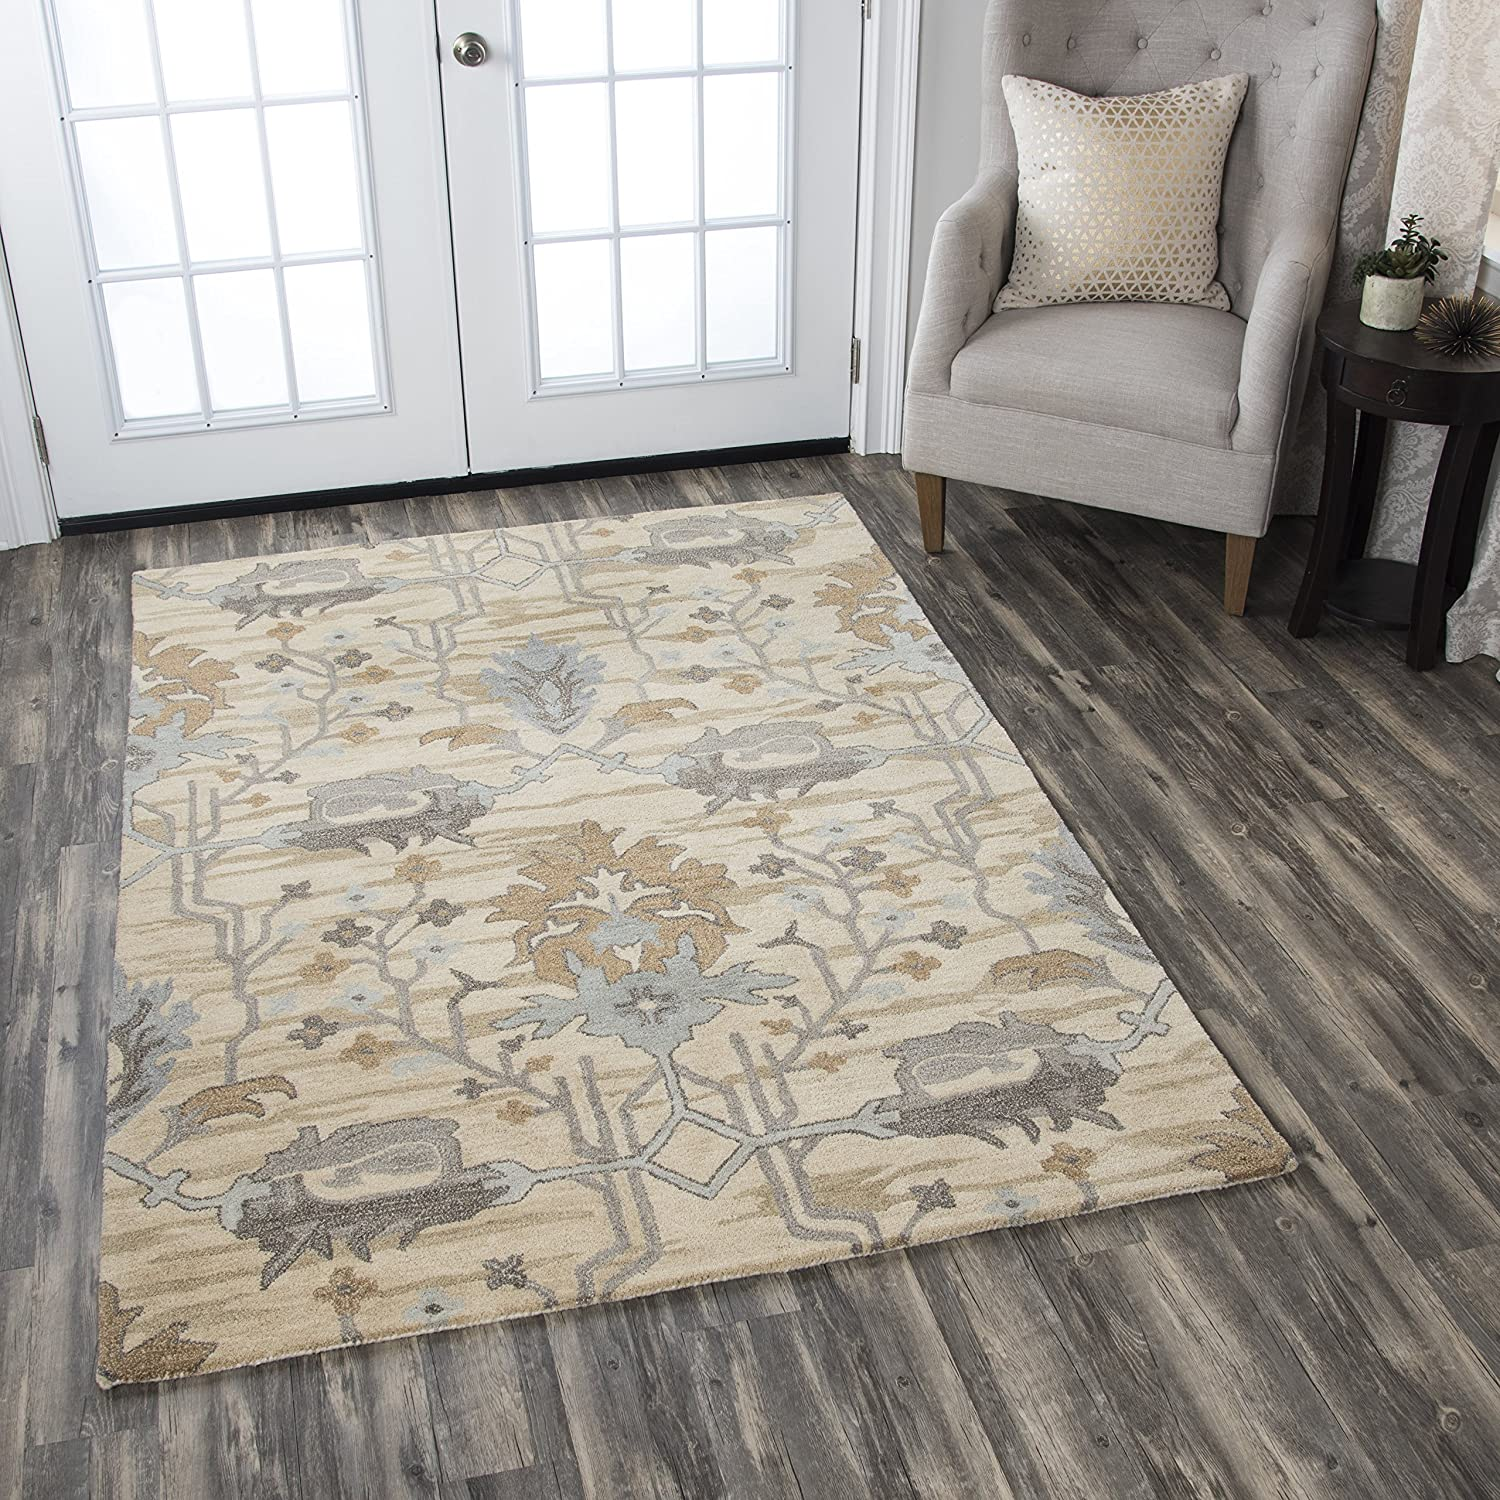 Rizzy Home Valintino Collection Wool Area Rug, 9' x 12', Beige/Gray Blue/Gray/Cream/Light Brown